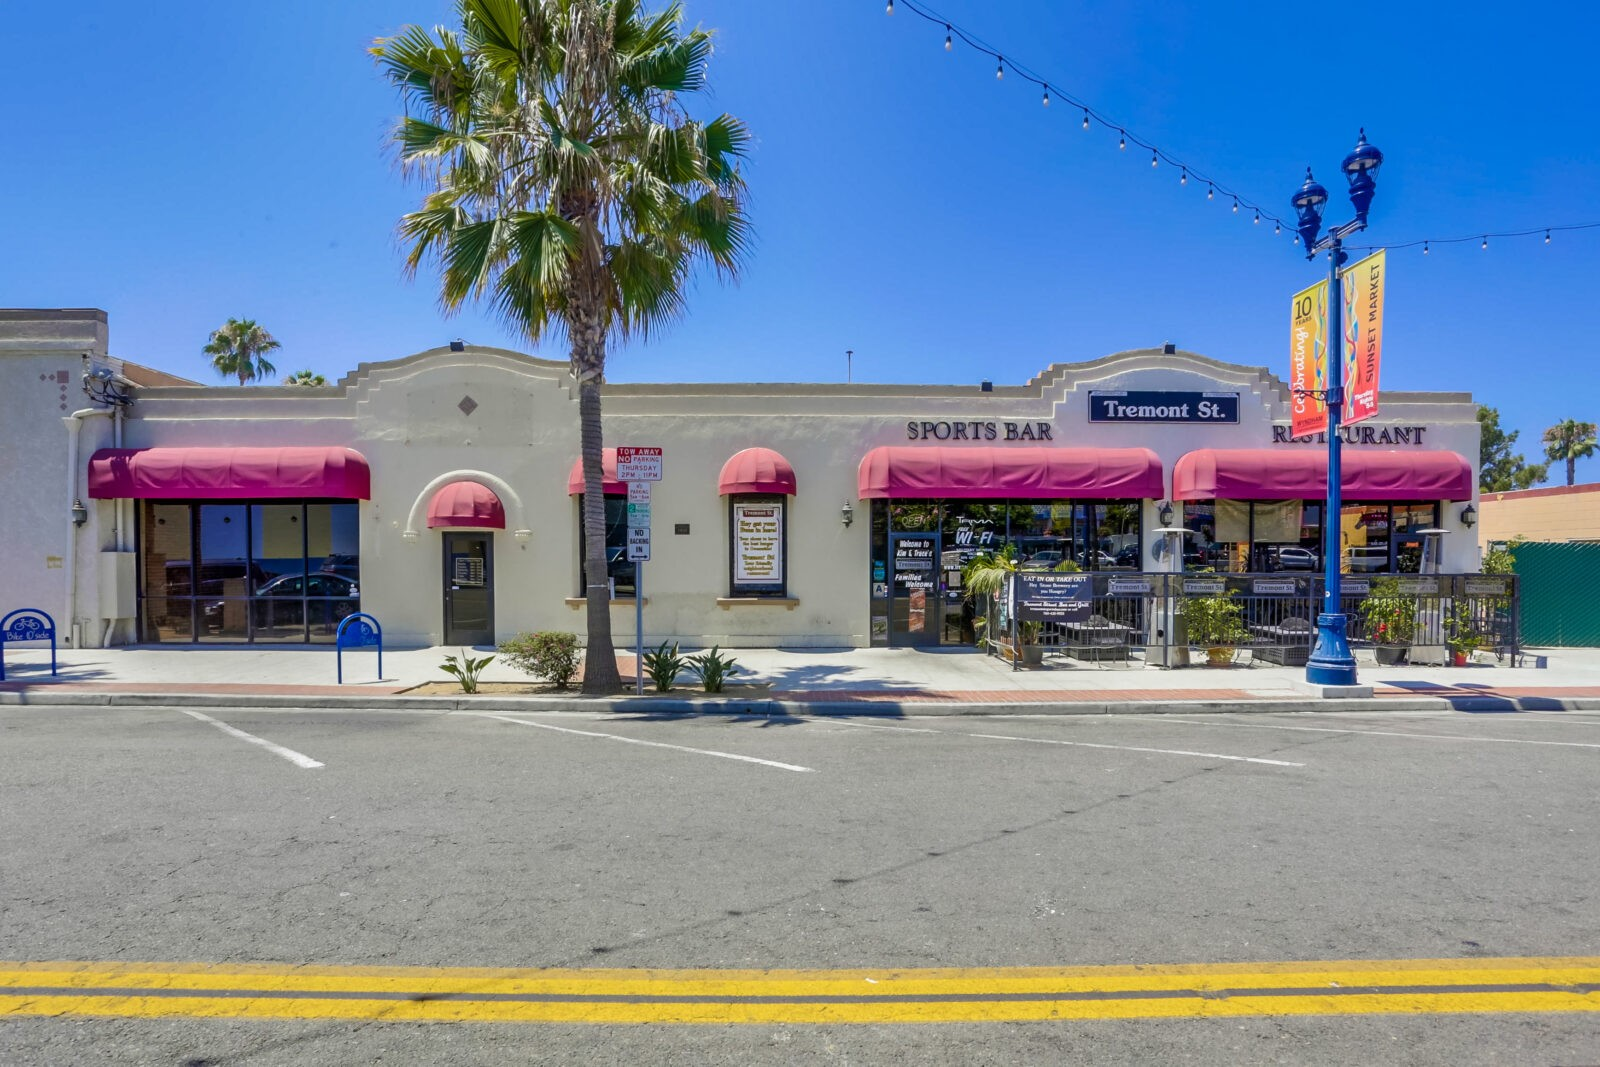 Fixturized Restaurant & Retail Spaces in Coastal Oceanside